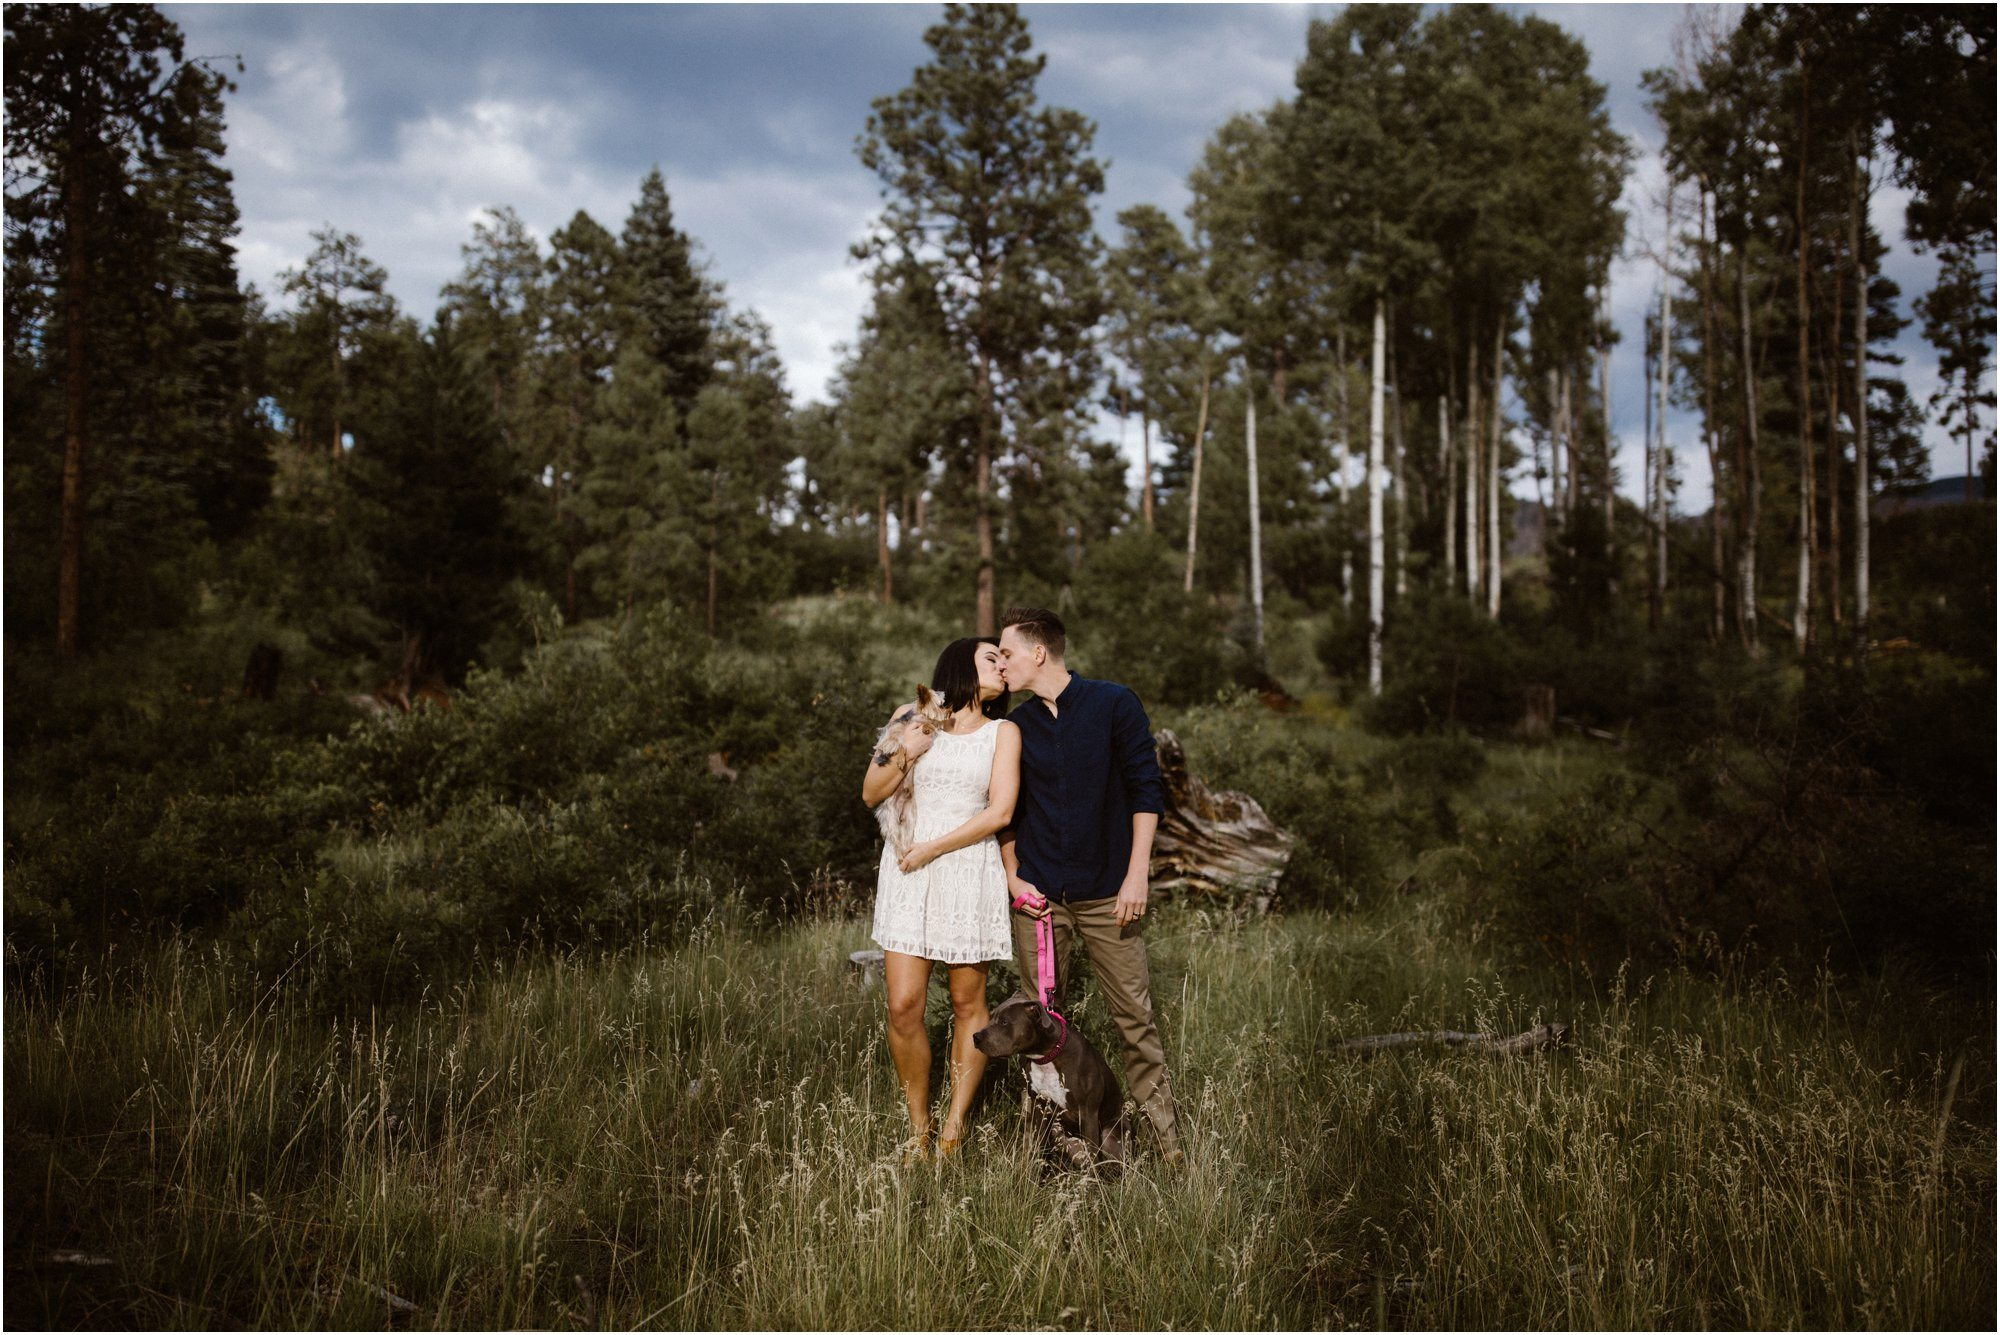 064Blue Rose Photography_ Albuquerque Engagement Photographer_ Blue Rose Studios_ Anniversary Pictures Santa Fe Photographer